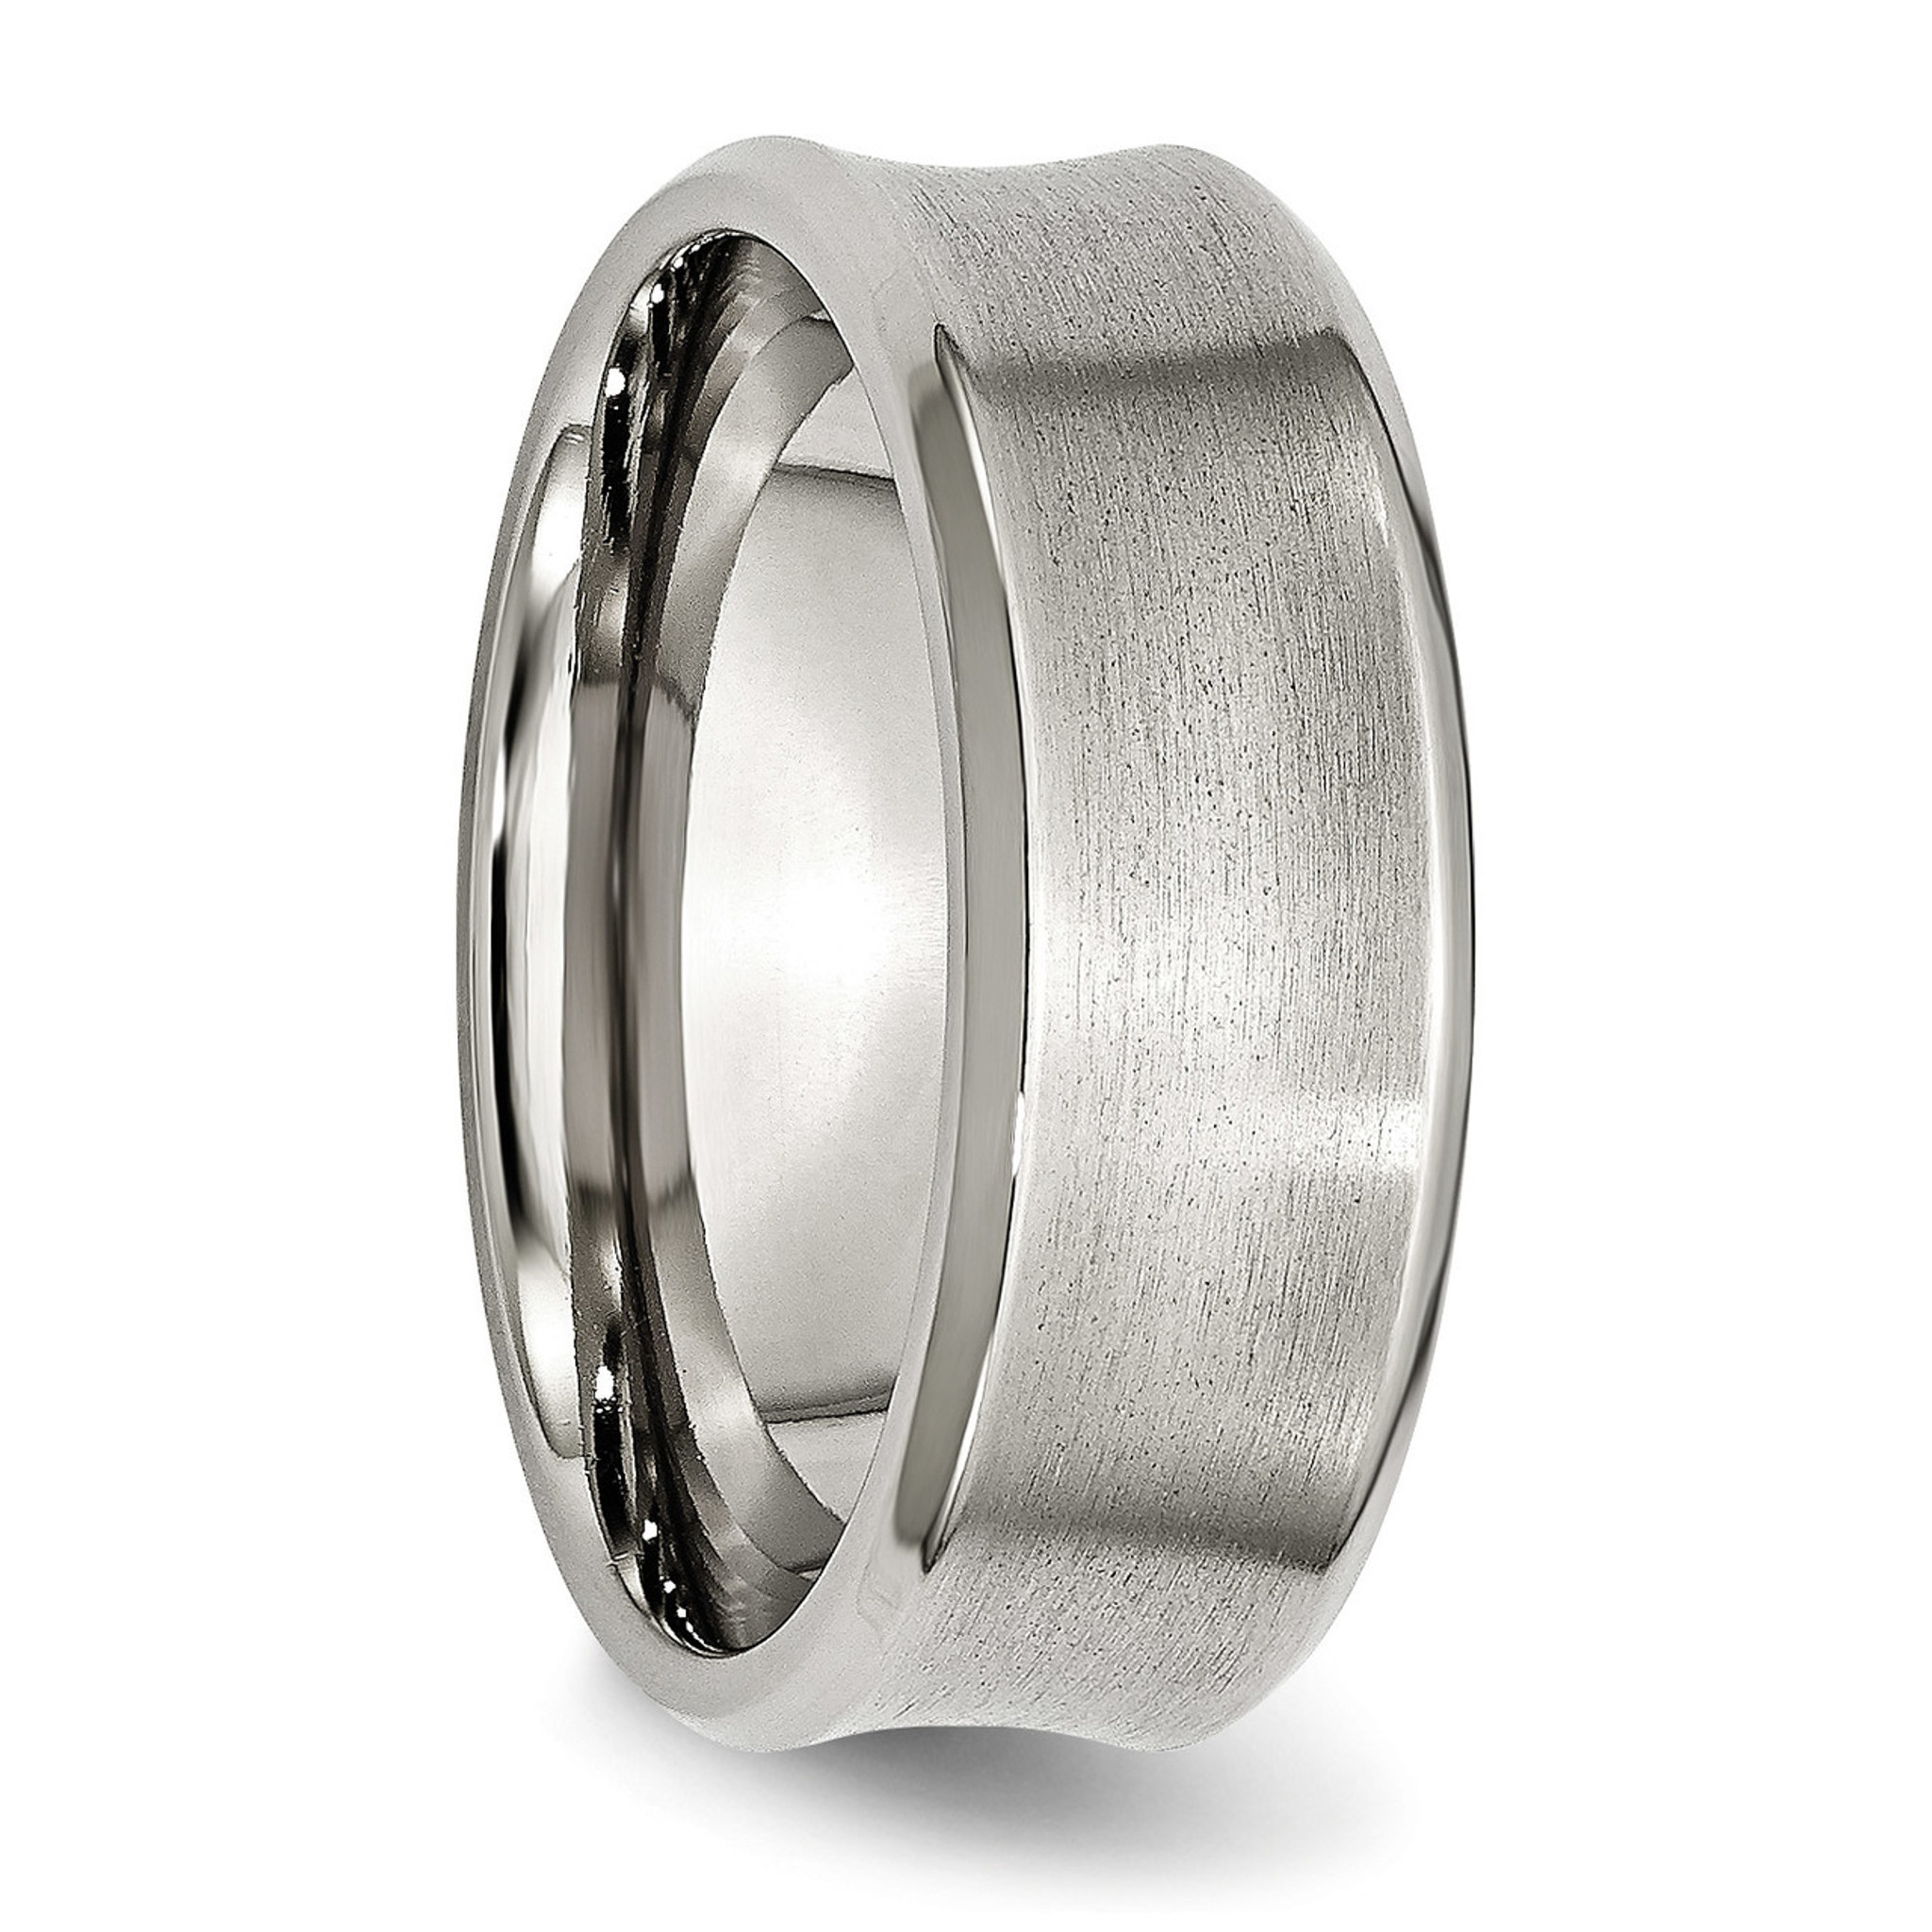 Stainless Steel Beveled Edge Concave 8mm Brushed Band Sr92: Concave Brushed Wedding Band At Websimilar.org